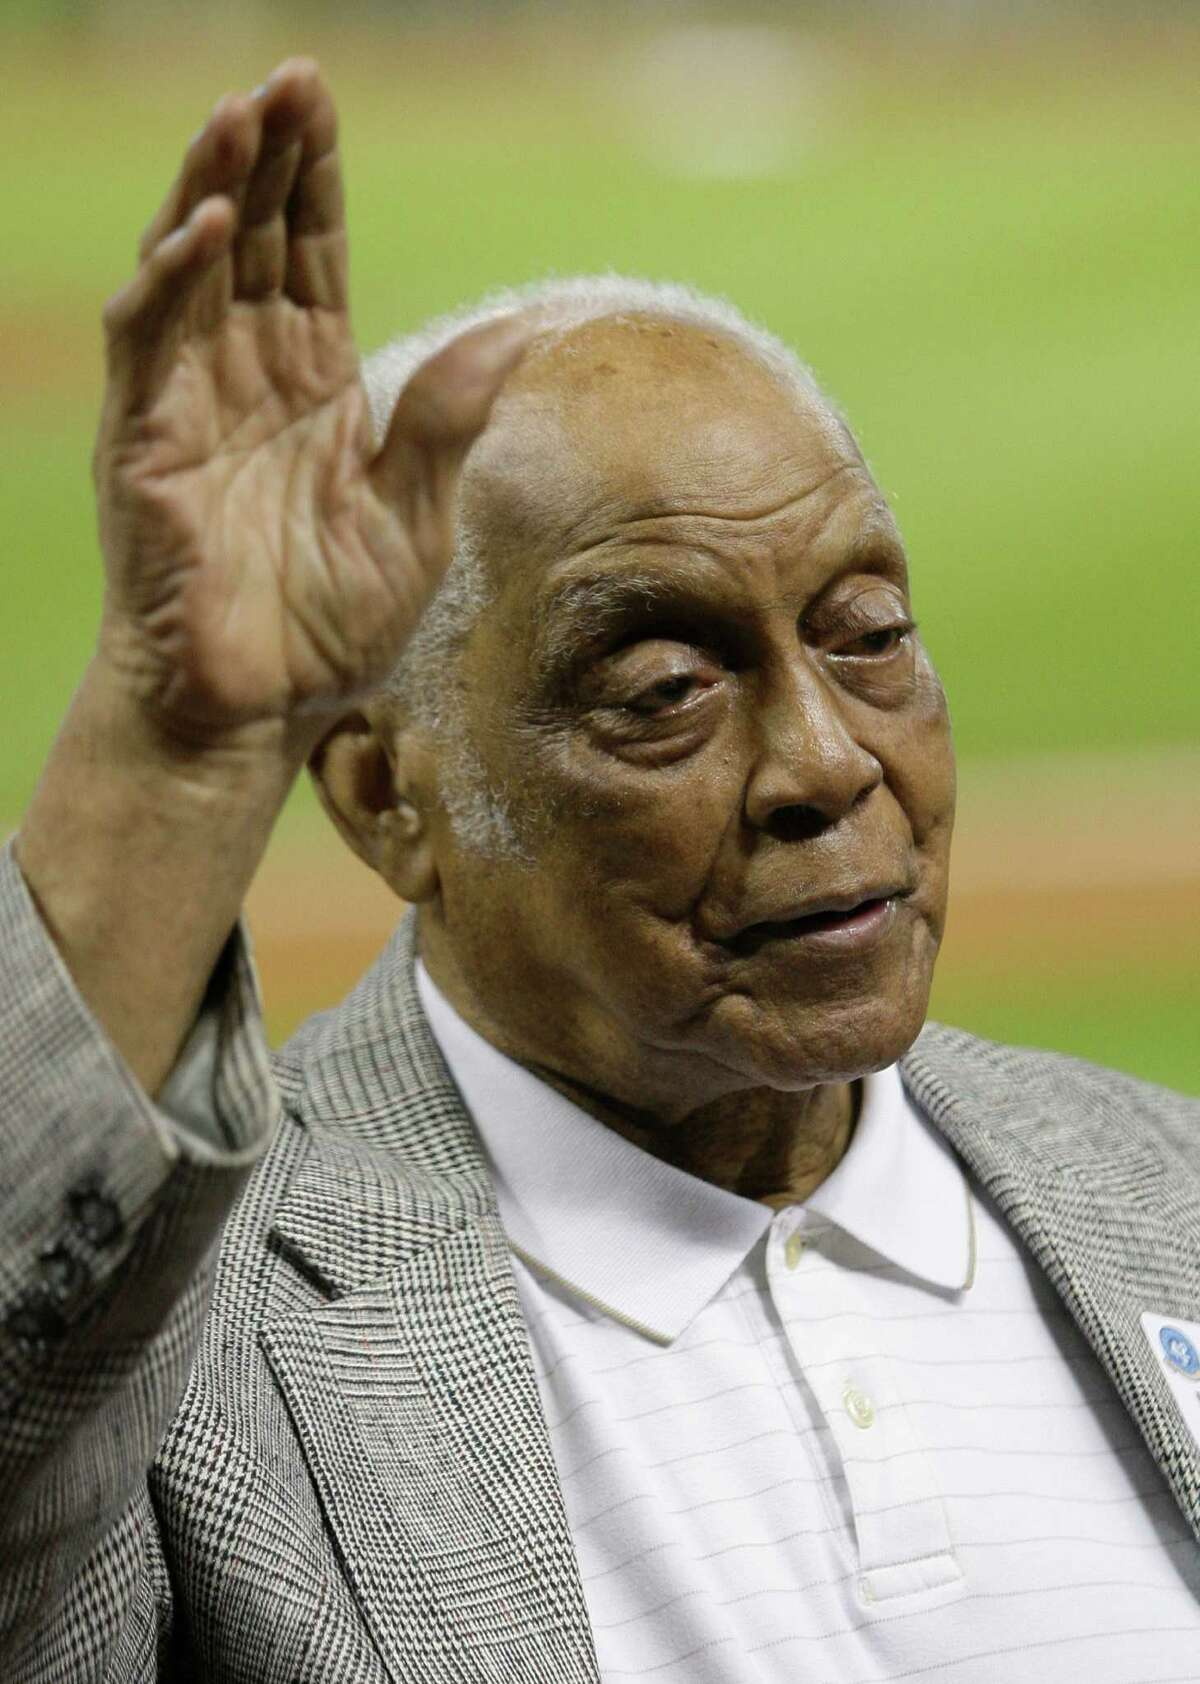 Monte Irvin was part of Jackie Robinson Day at Minute Maid Park in 2012.